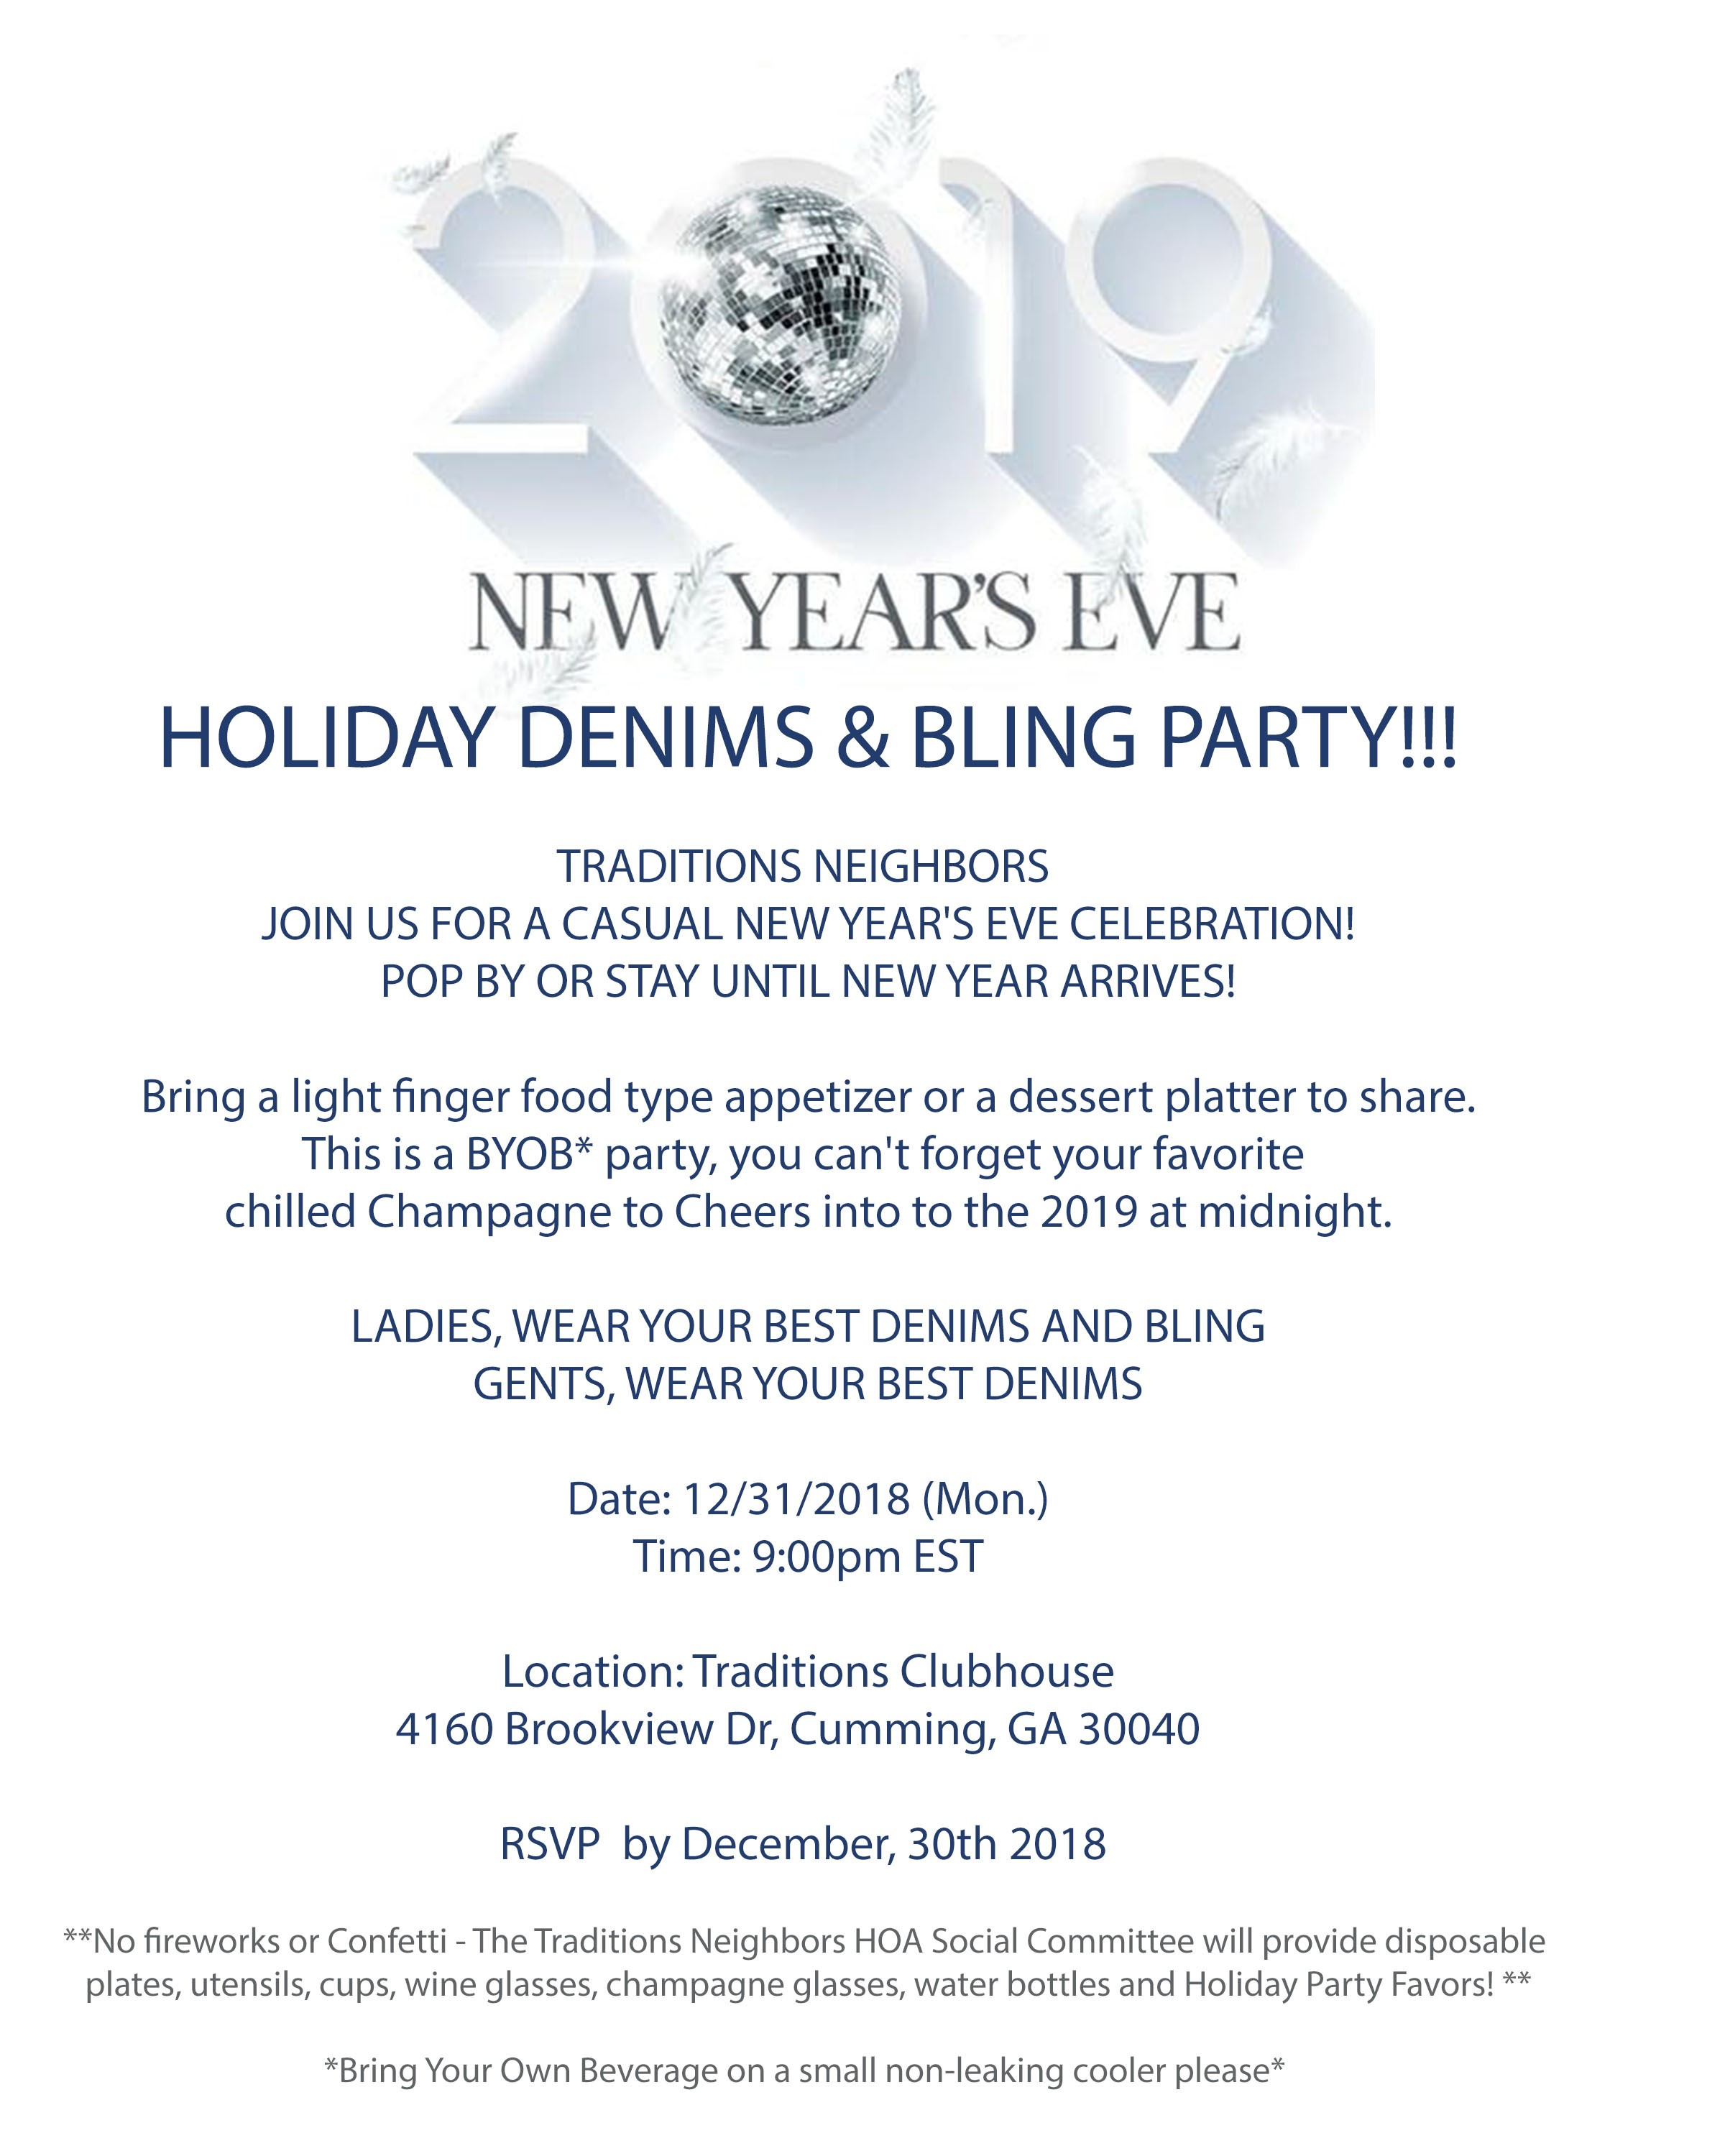 New Year's Eve Holiday Denims & Bling Party